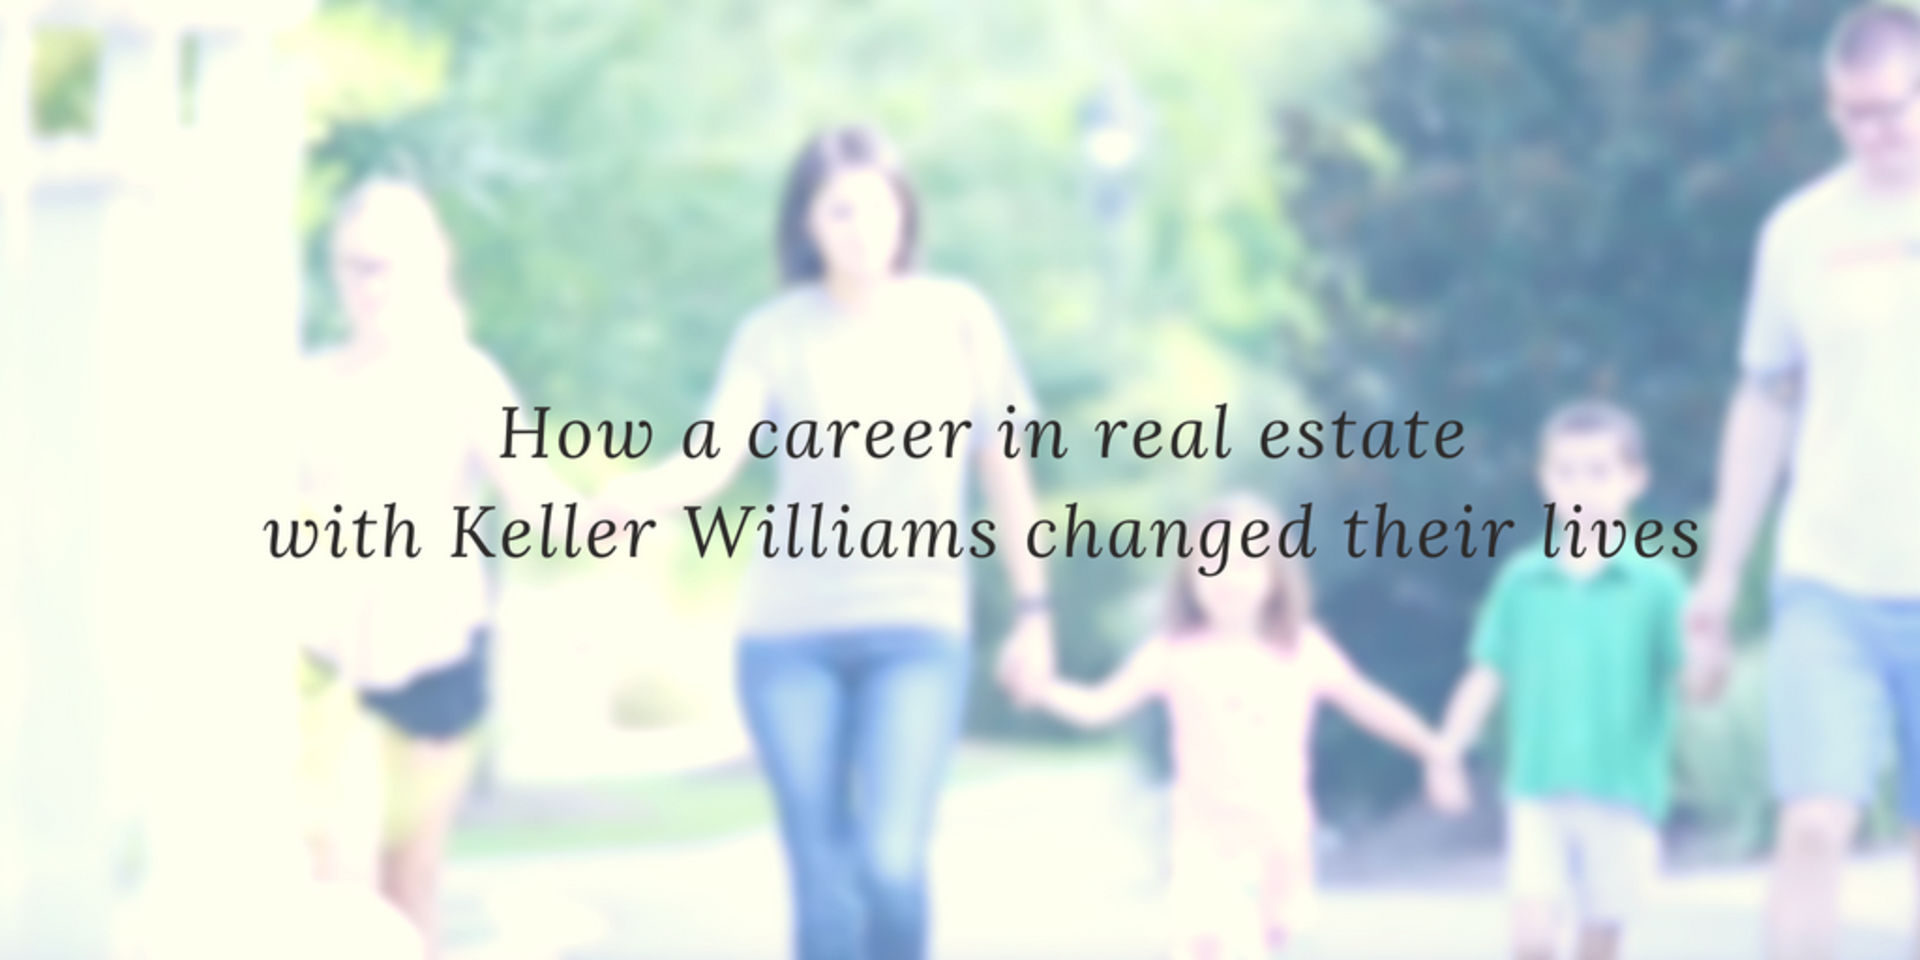 How a Career in Real Estate with Keller Williams Changed their lives